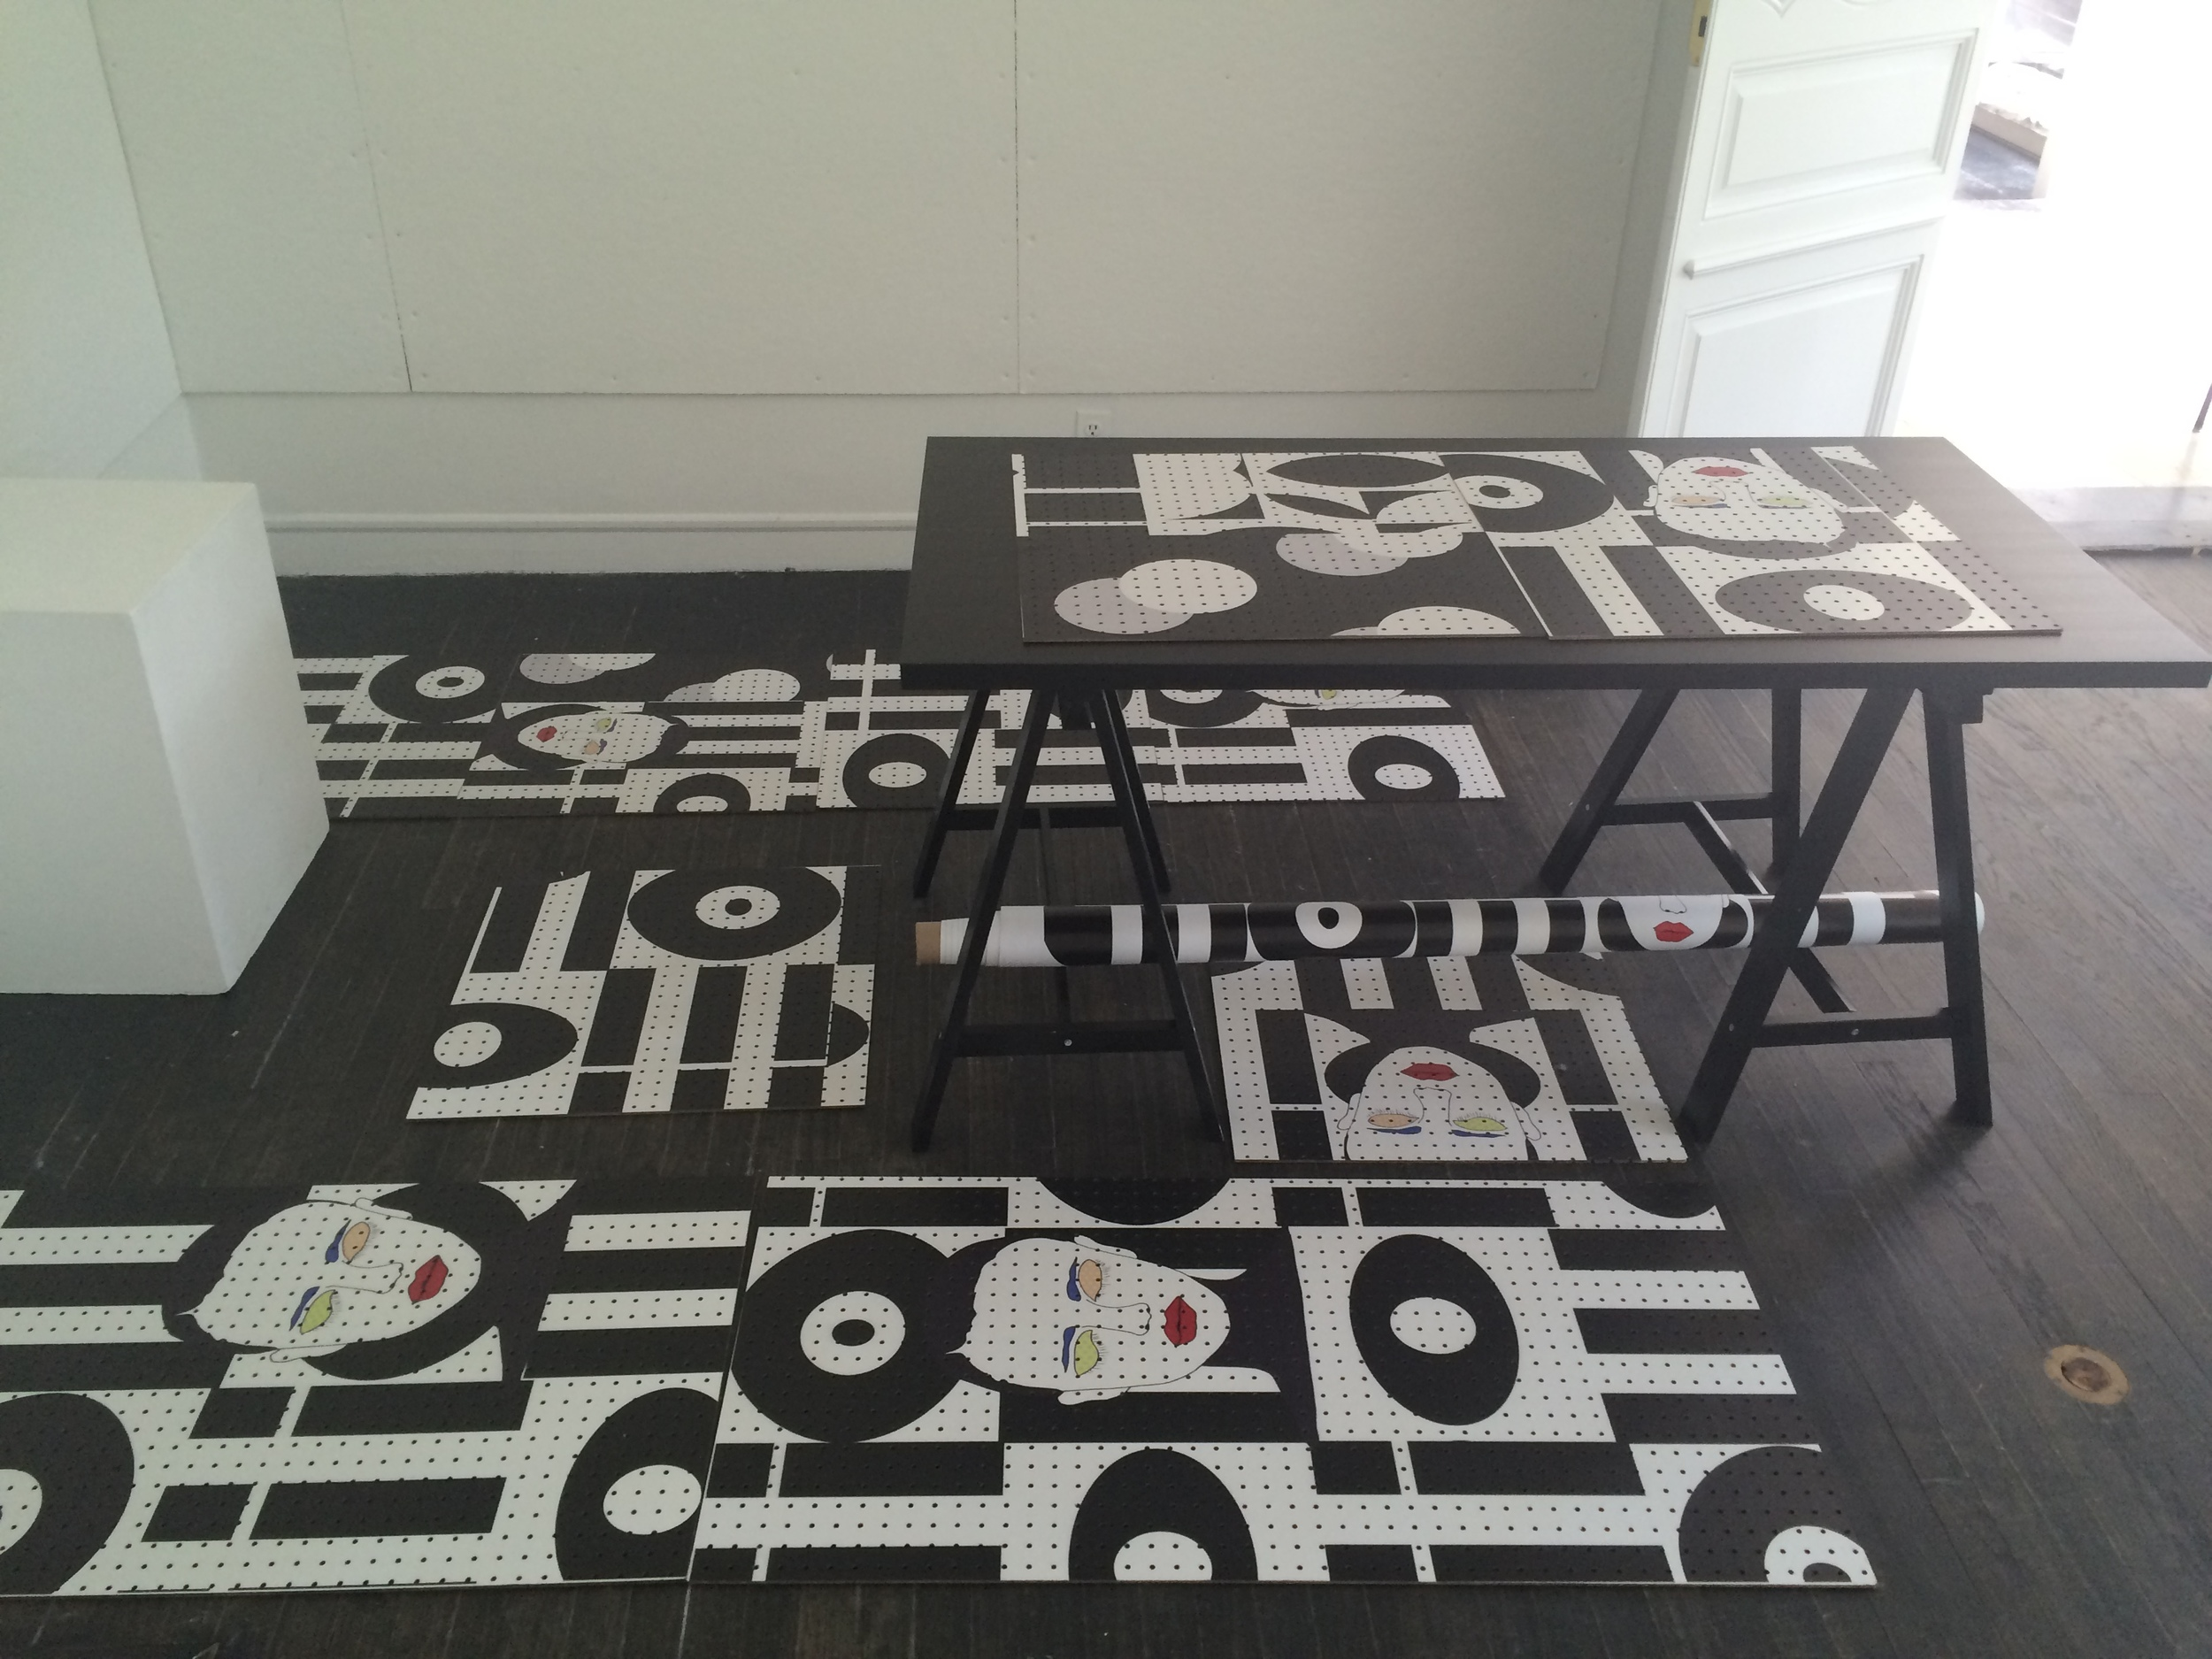 I printed on peg boards for a wall covering idea for FRIZZ handbag brand pop-up shop.